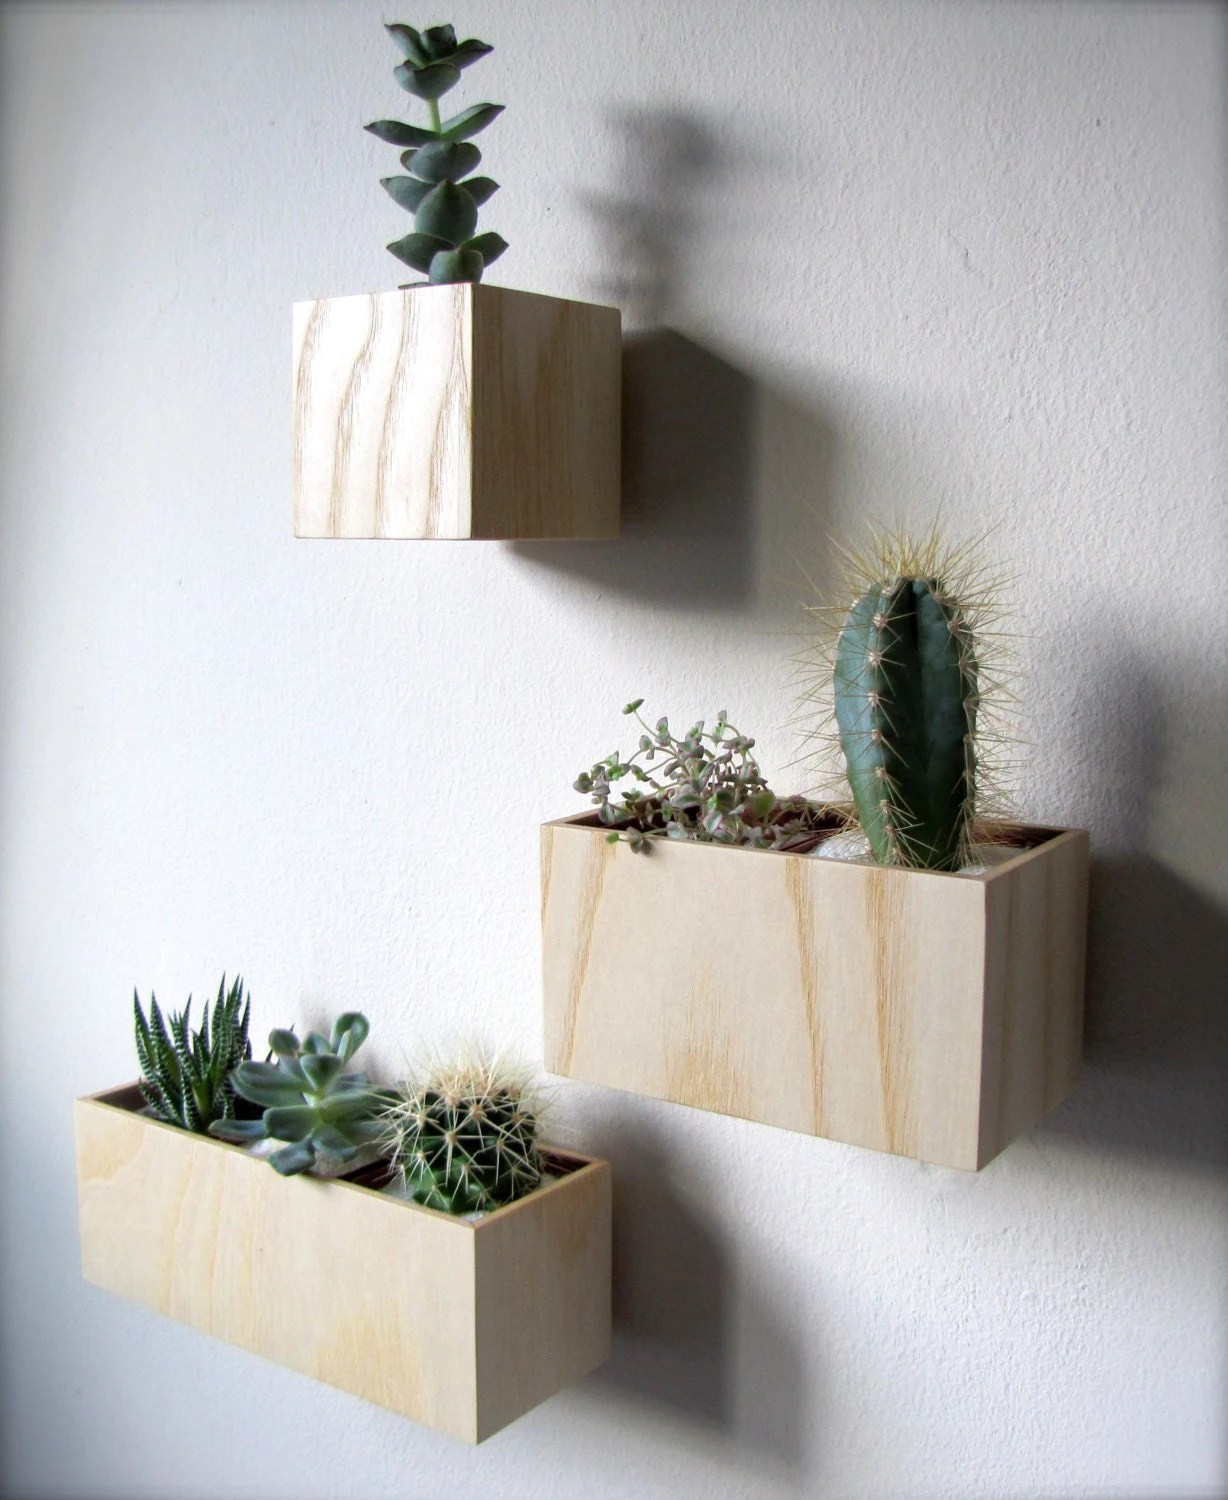 Indoor Wall Mounted Plant Holders Clearance Set Of Three Wall Hanging Planters In Ash Wood